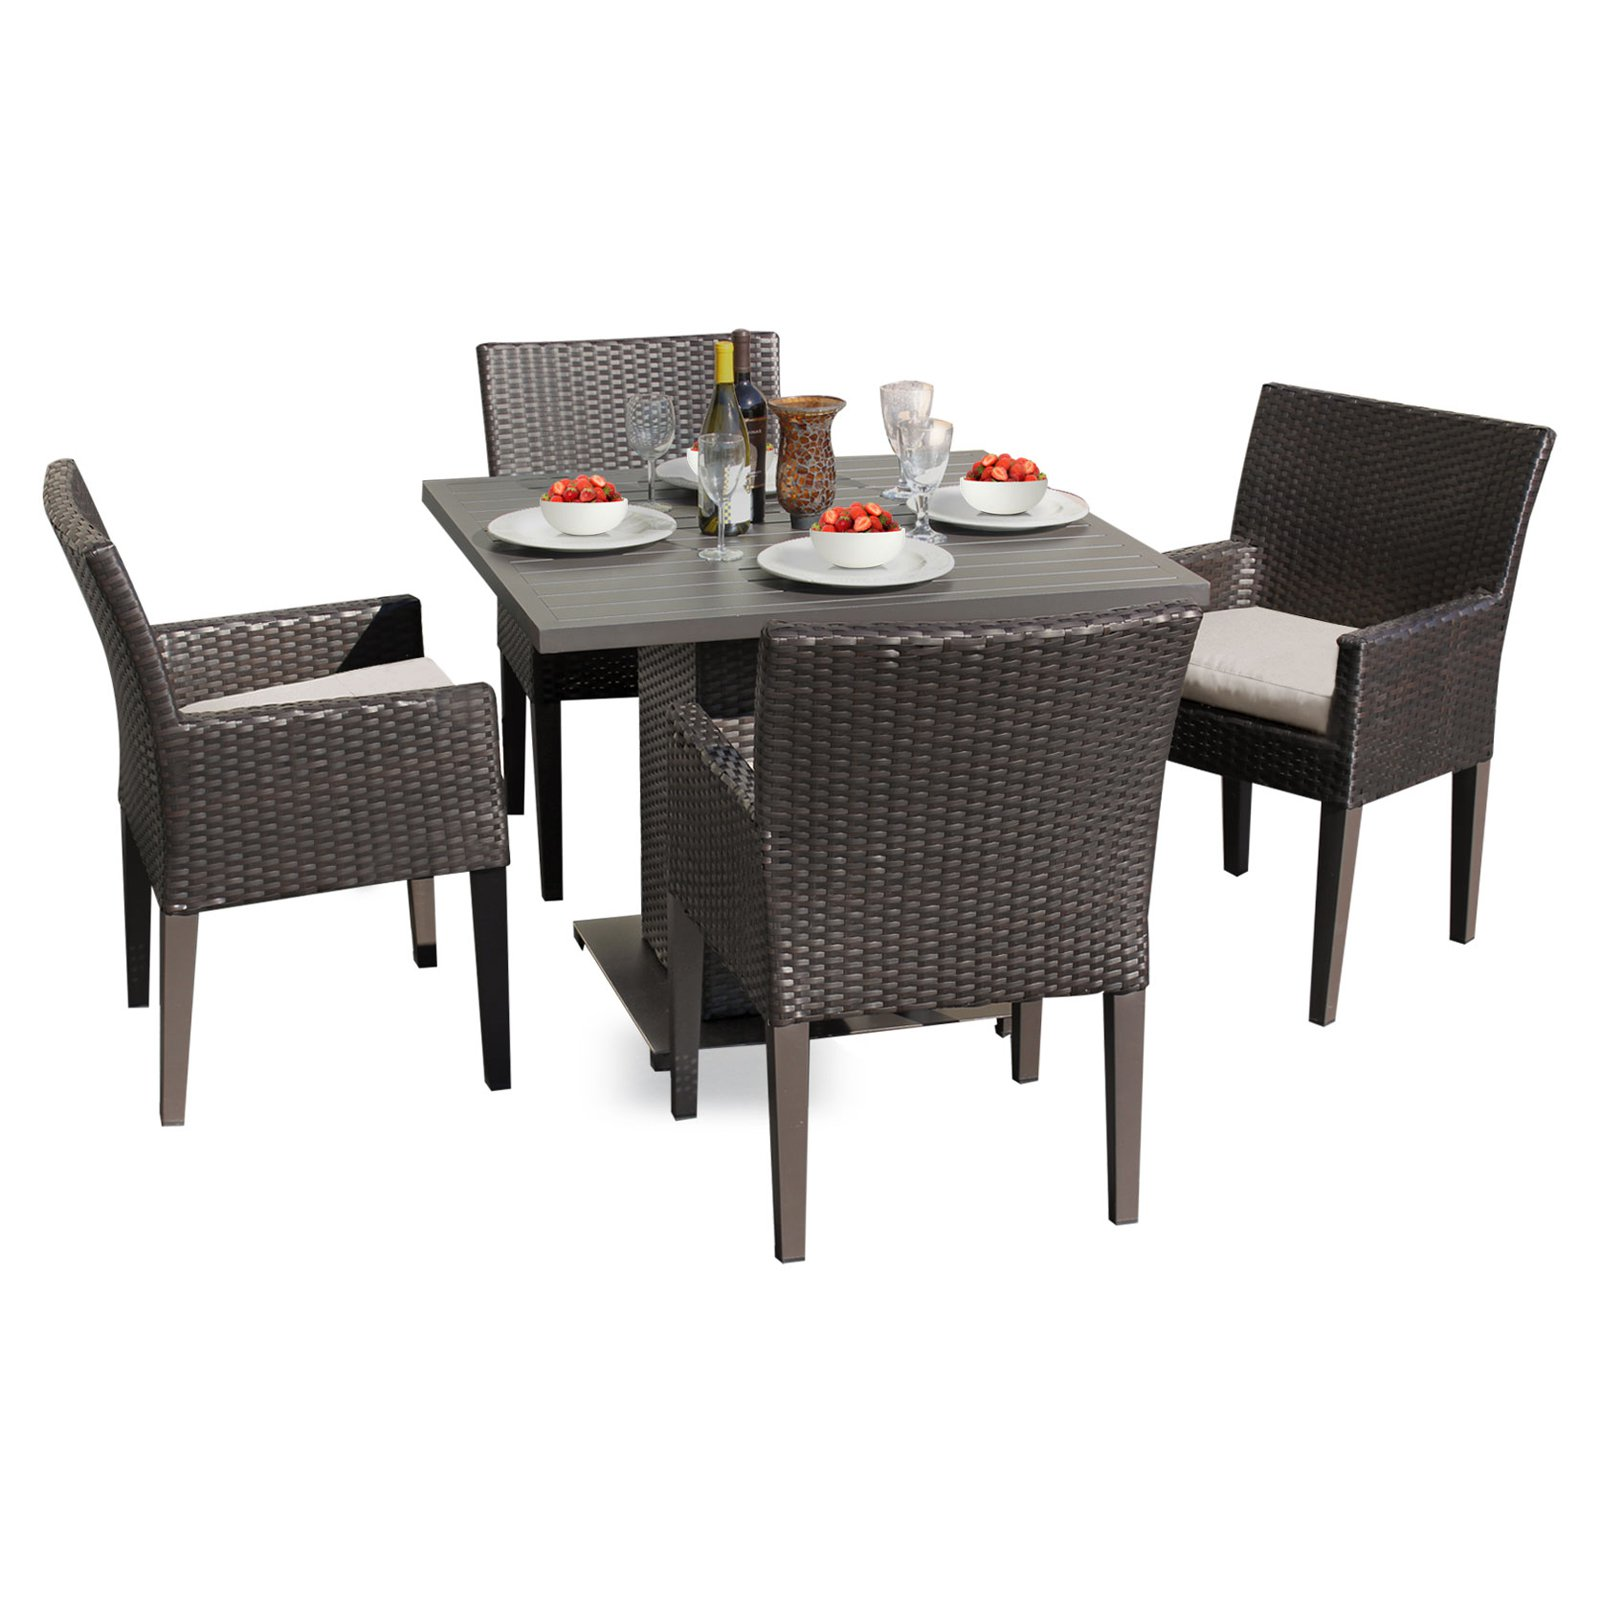 TK Classics Napa Wicker 5 Piece Patio Dining Set with 8 Cushion Covers